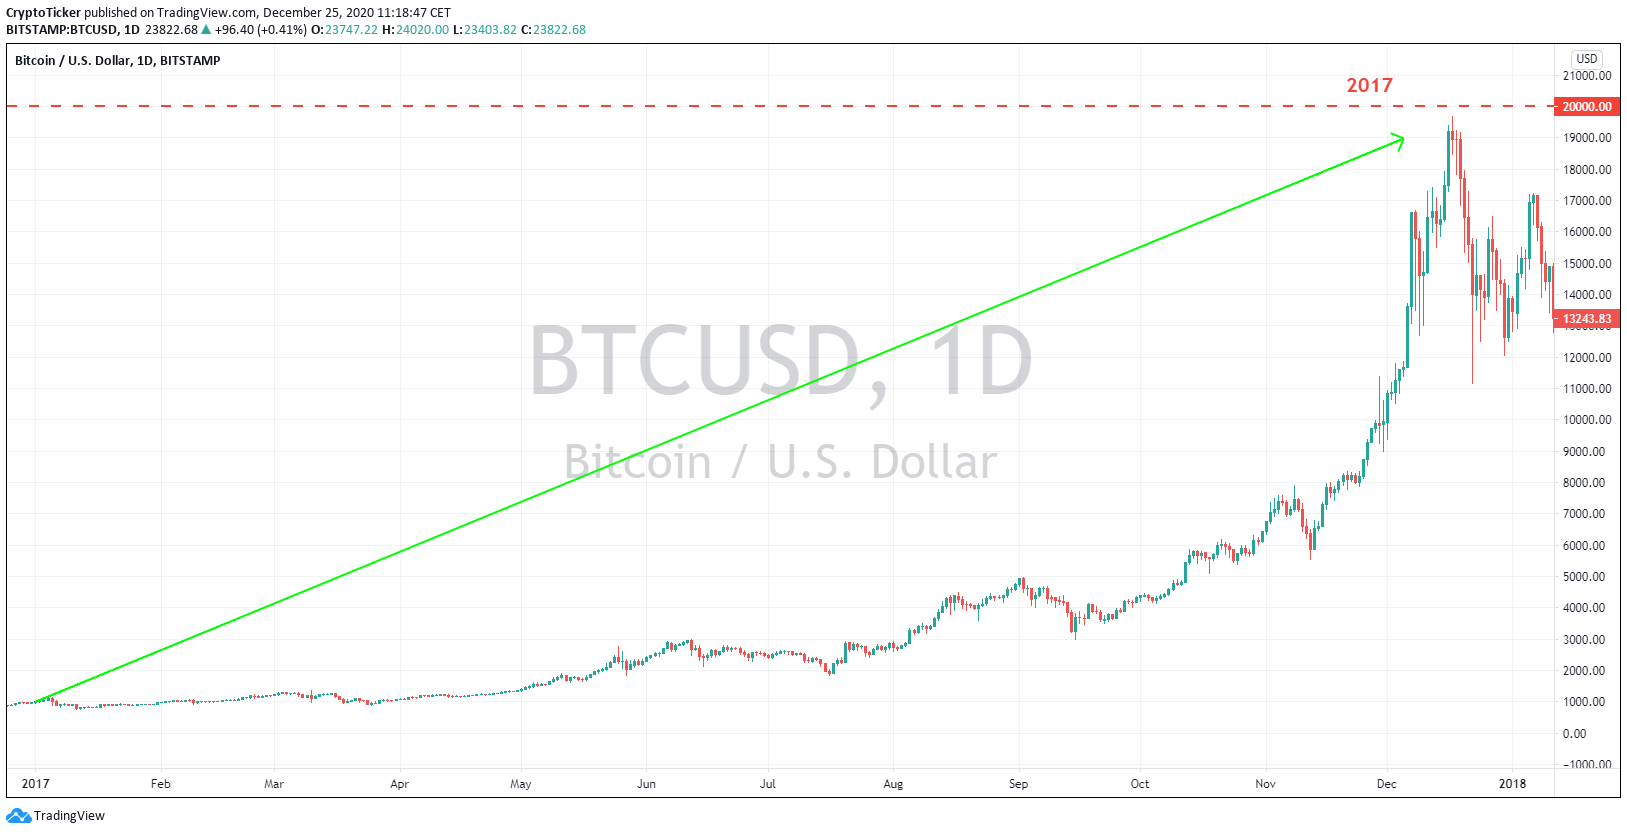 BTC/USD 1-Day chart, Flashback to the year of 2017